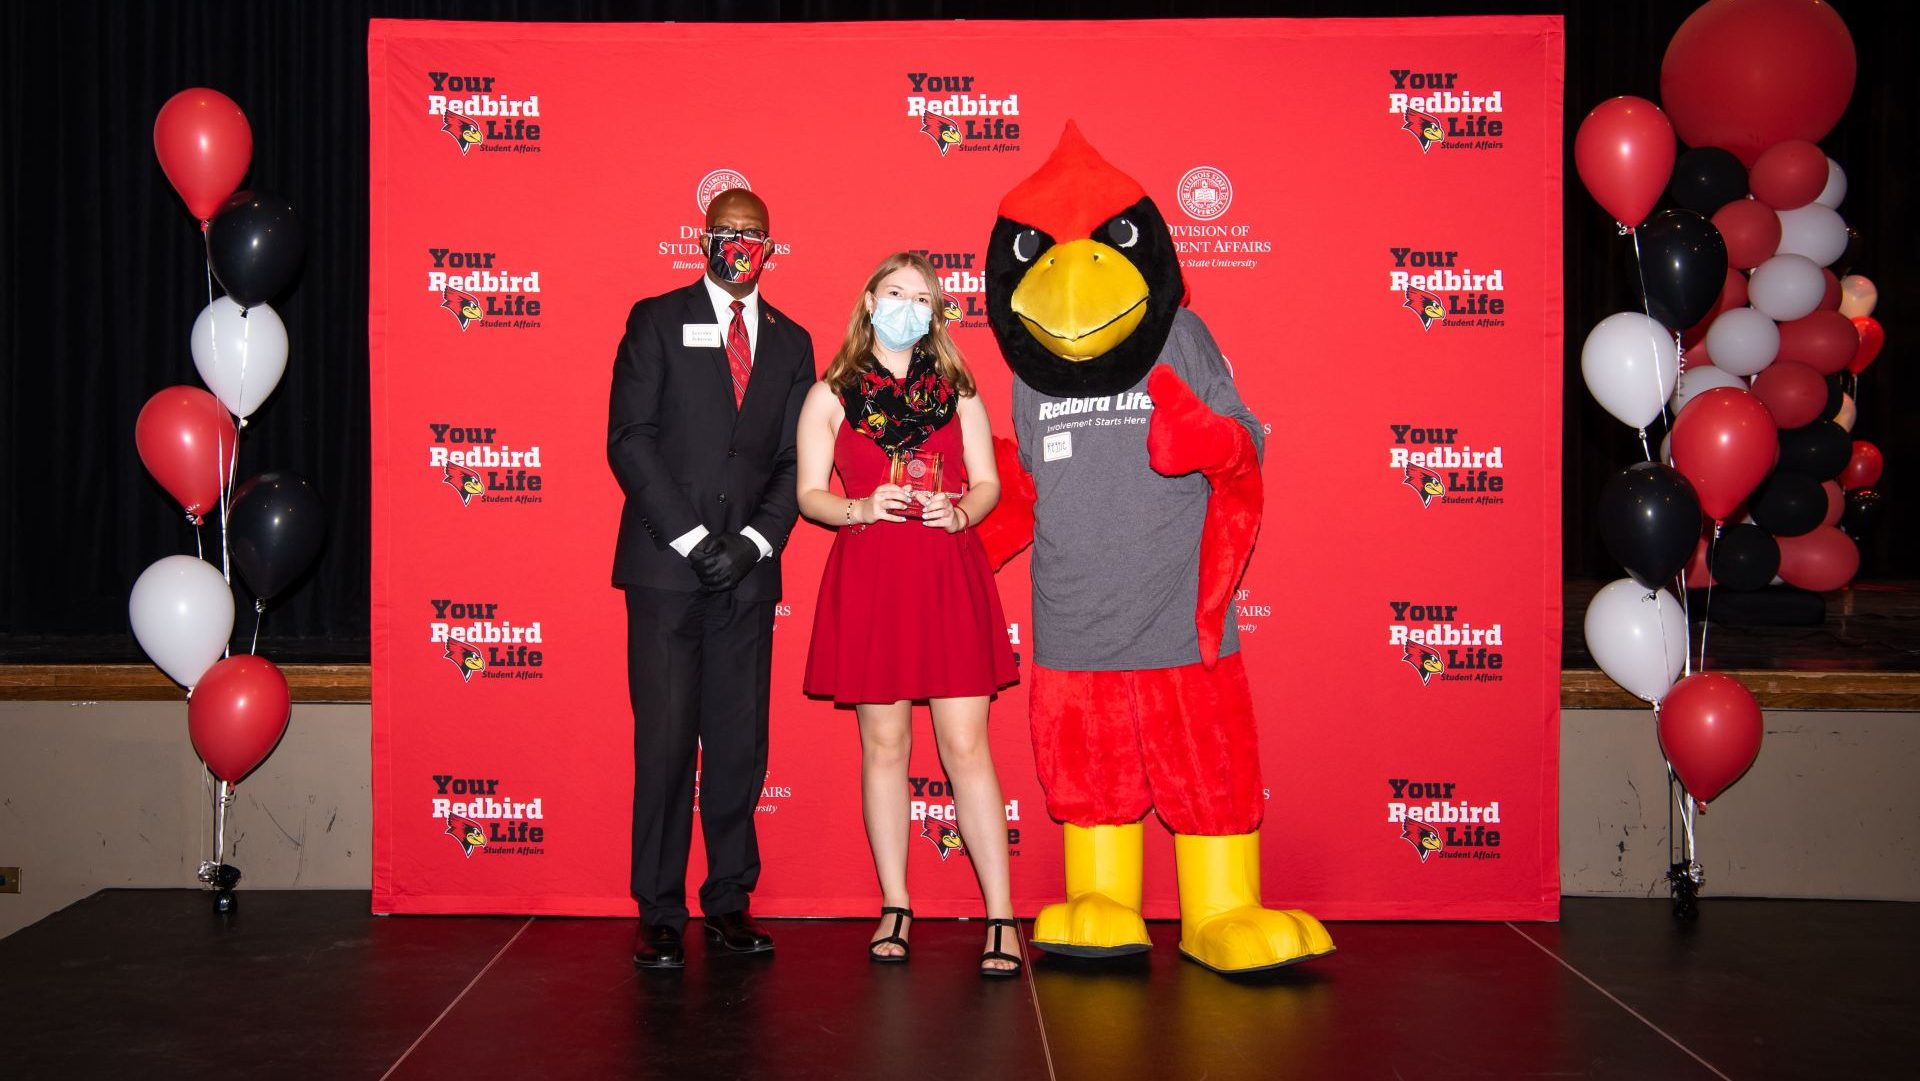 Jennifer Miller with Levester Johnson and Reggie Redbird at the Student Involvement Awards